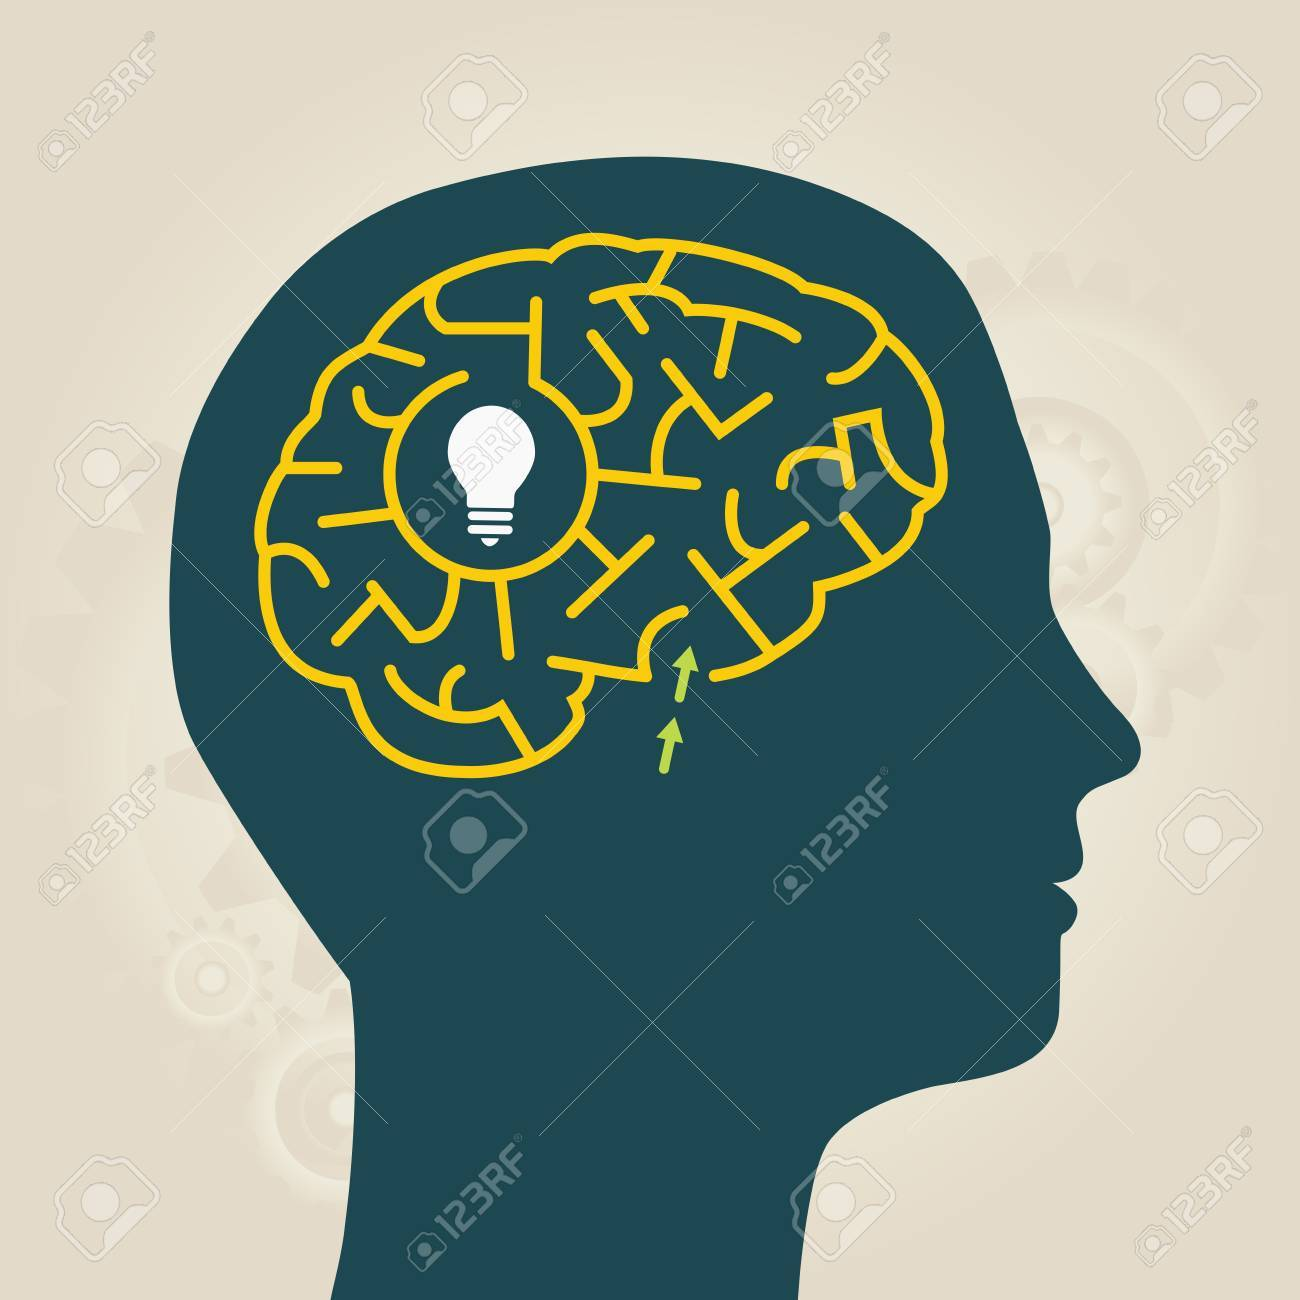 men with idea in mental labyrinth Stock Vector - 24442131